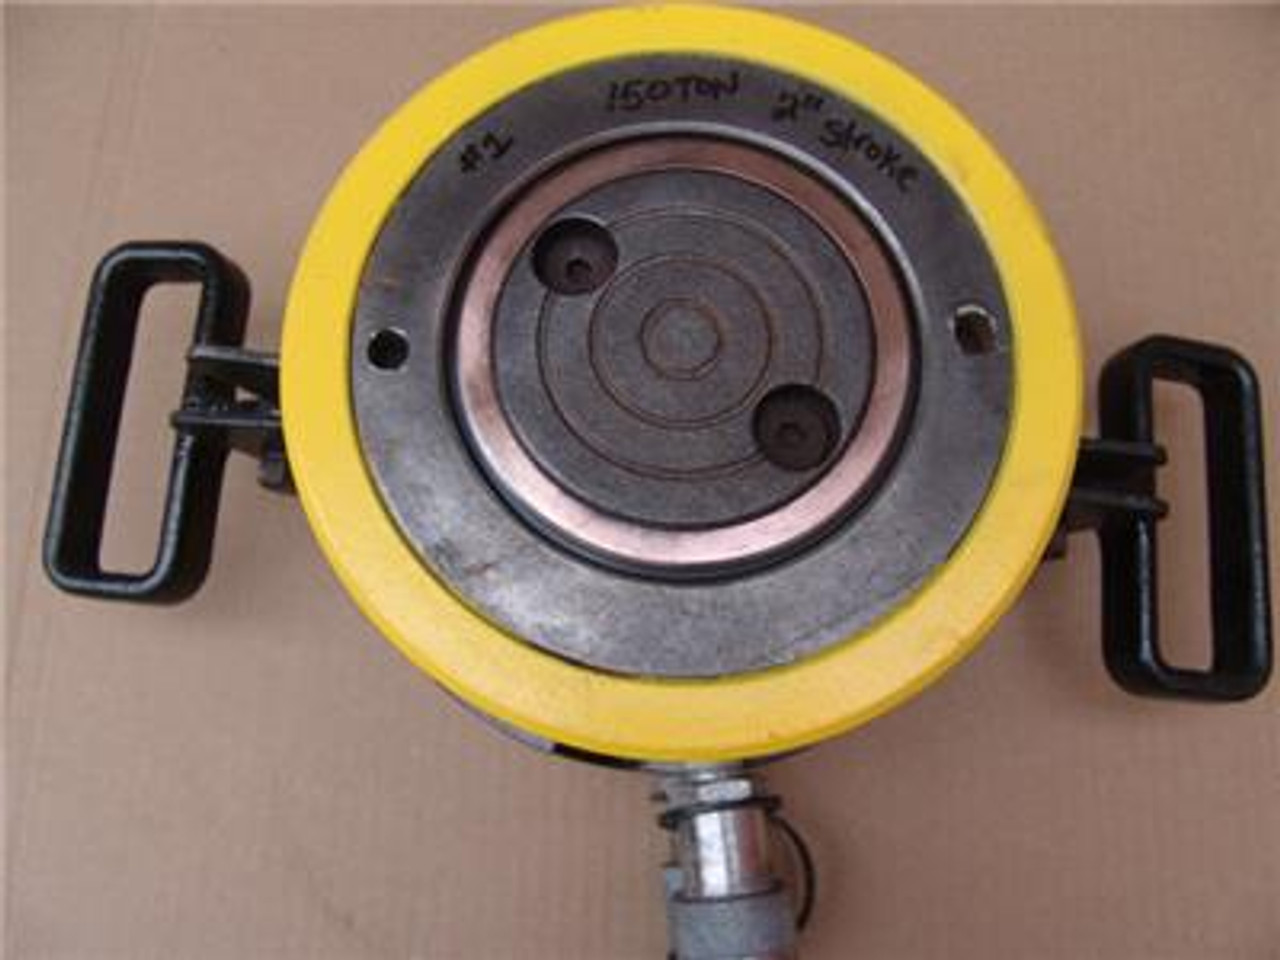 ENERPAC 150 TON DOUBLE ACTING HYDRAULIC CYLINDER 2 INCH STROKE MODEL RR-1502  #1